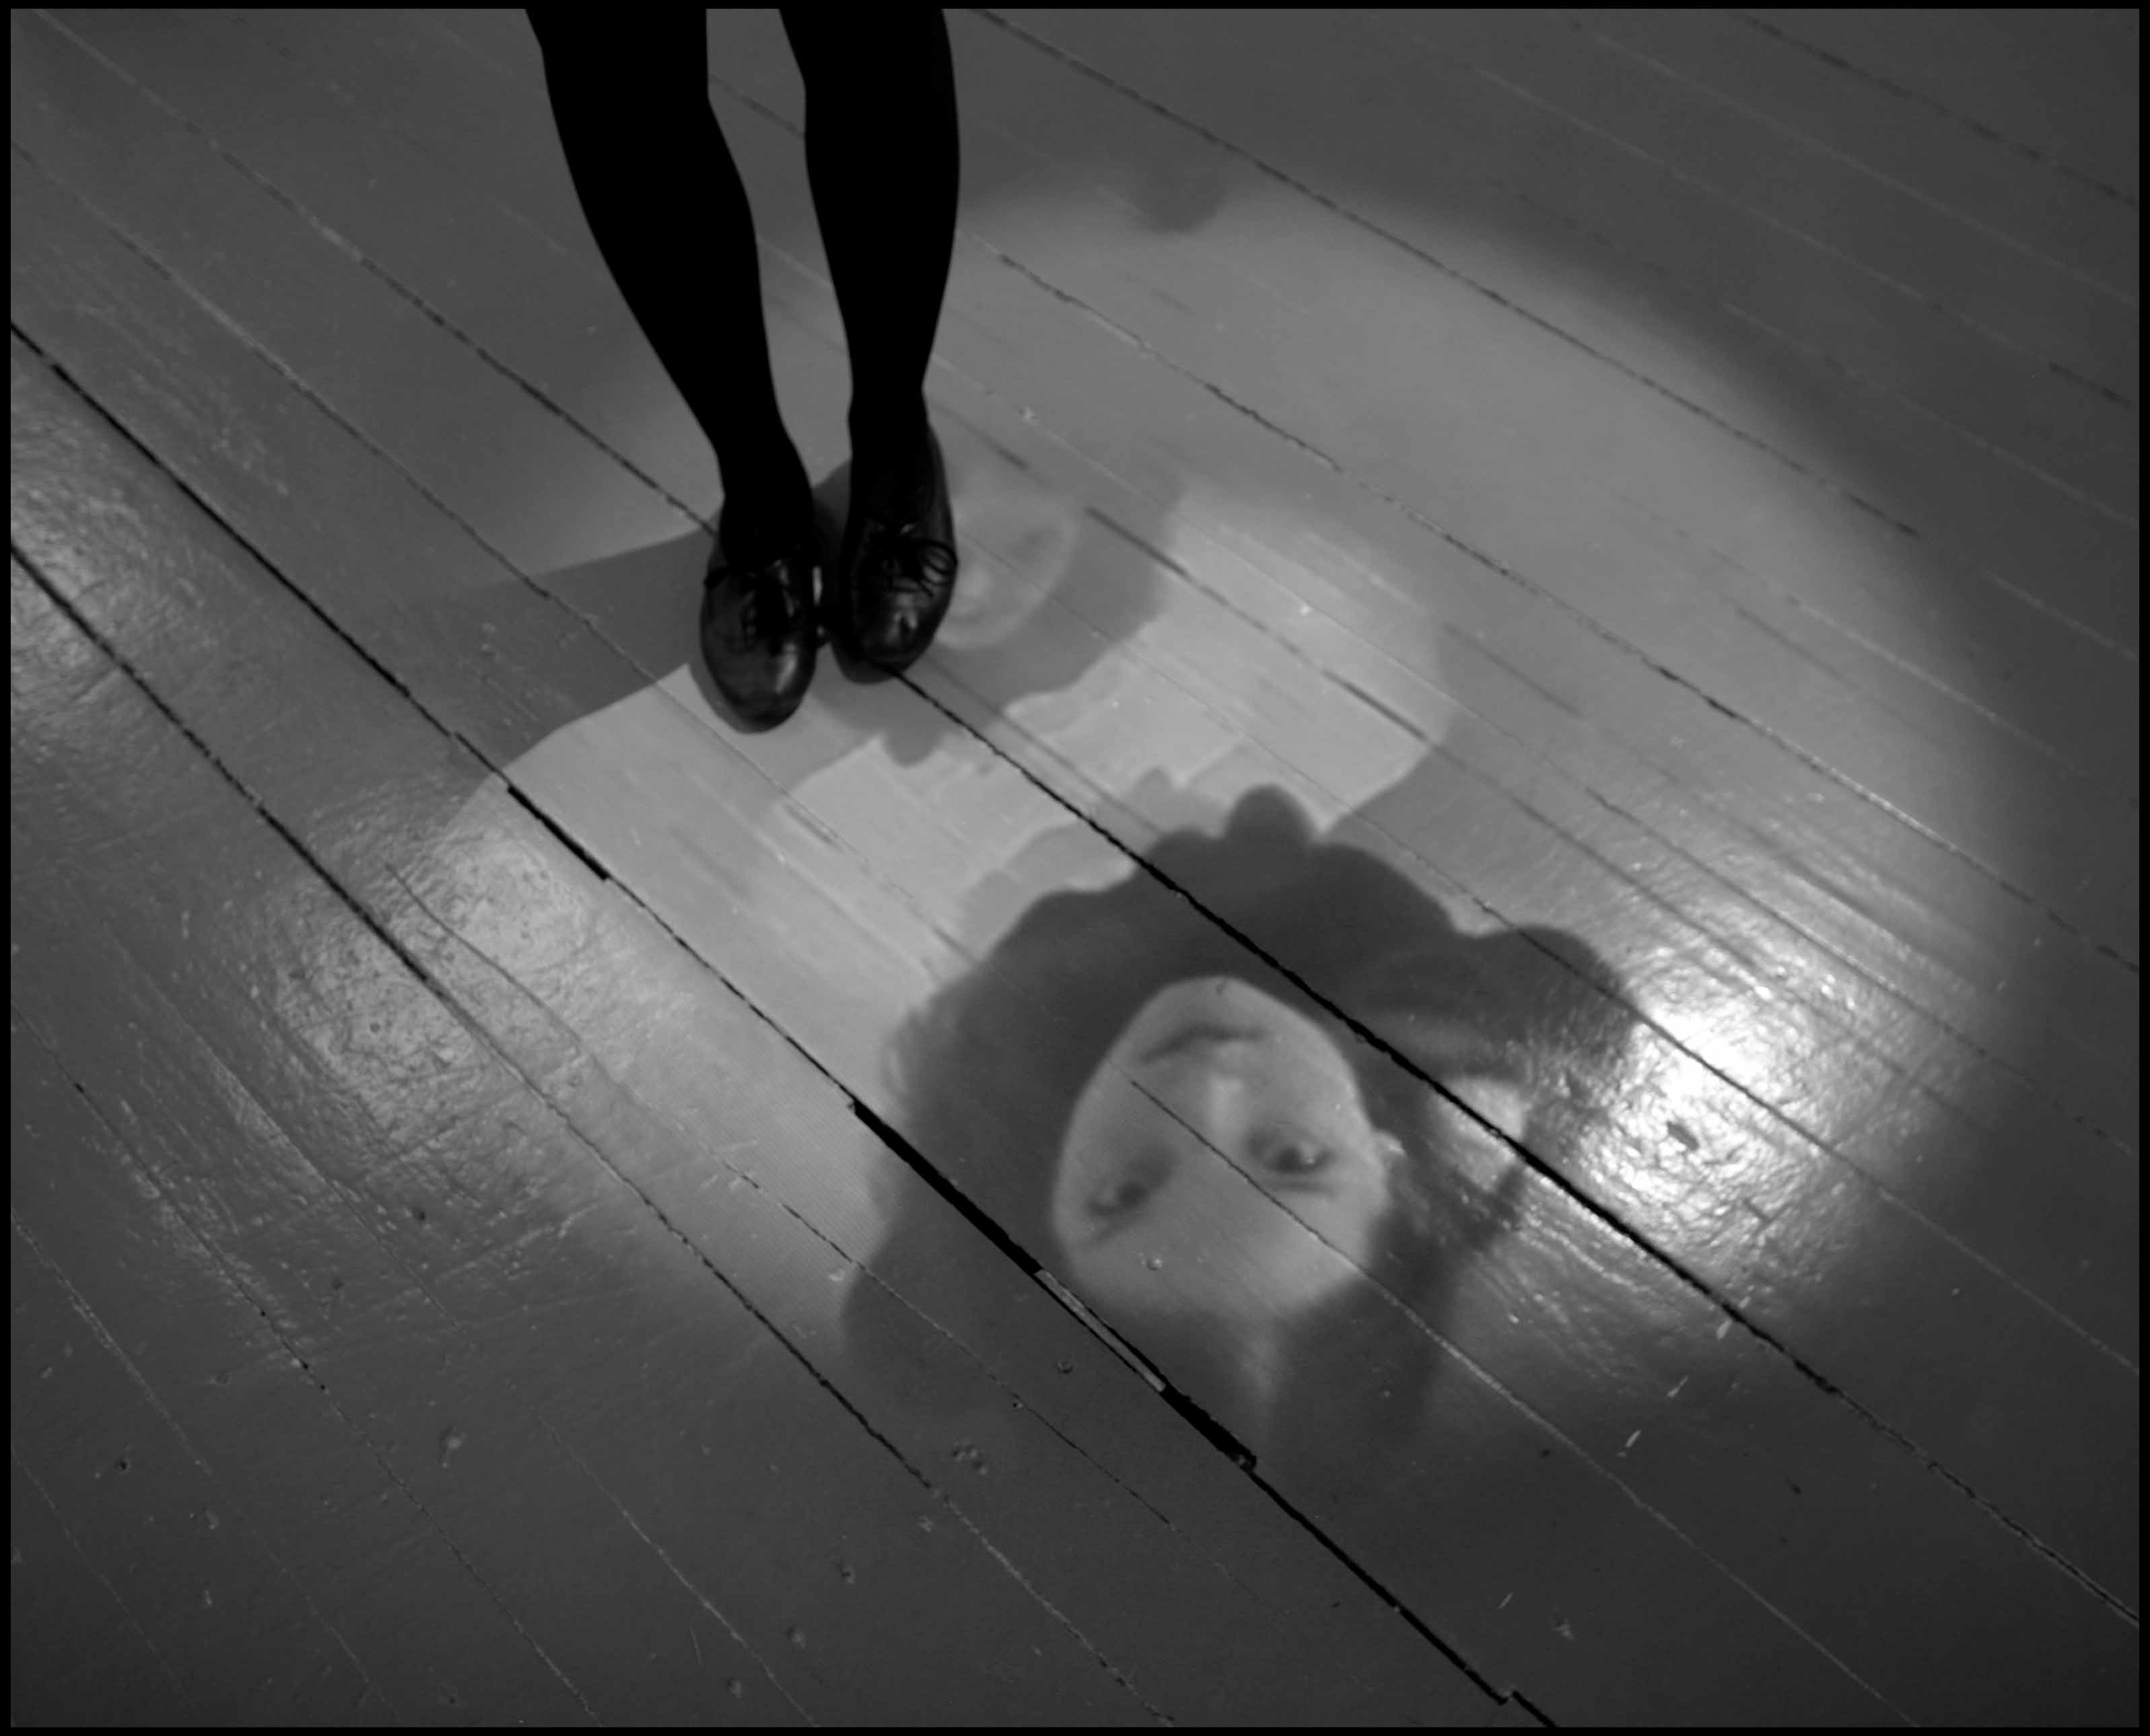 A view of the floor where we see a woman's legs and feet. On the floor a projected video shows a woman's face, which is repeated smaller and smaller.